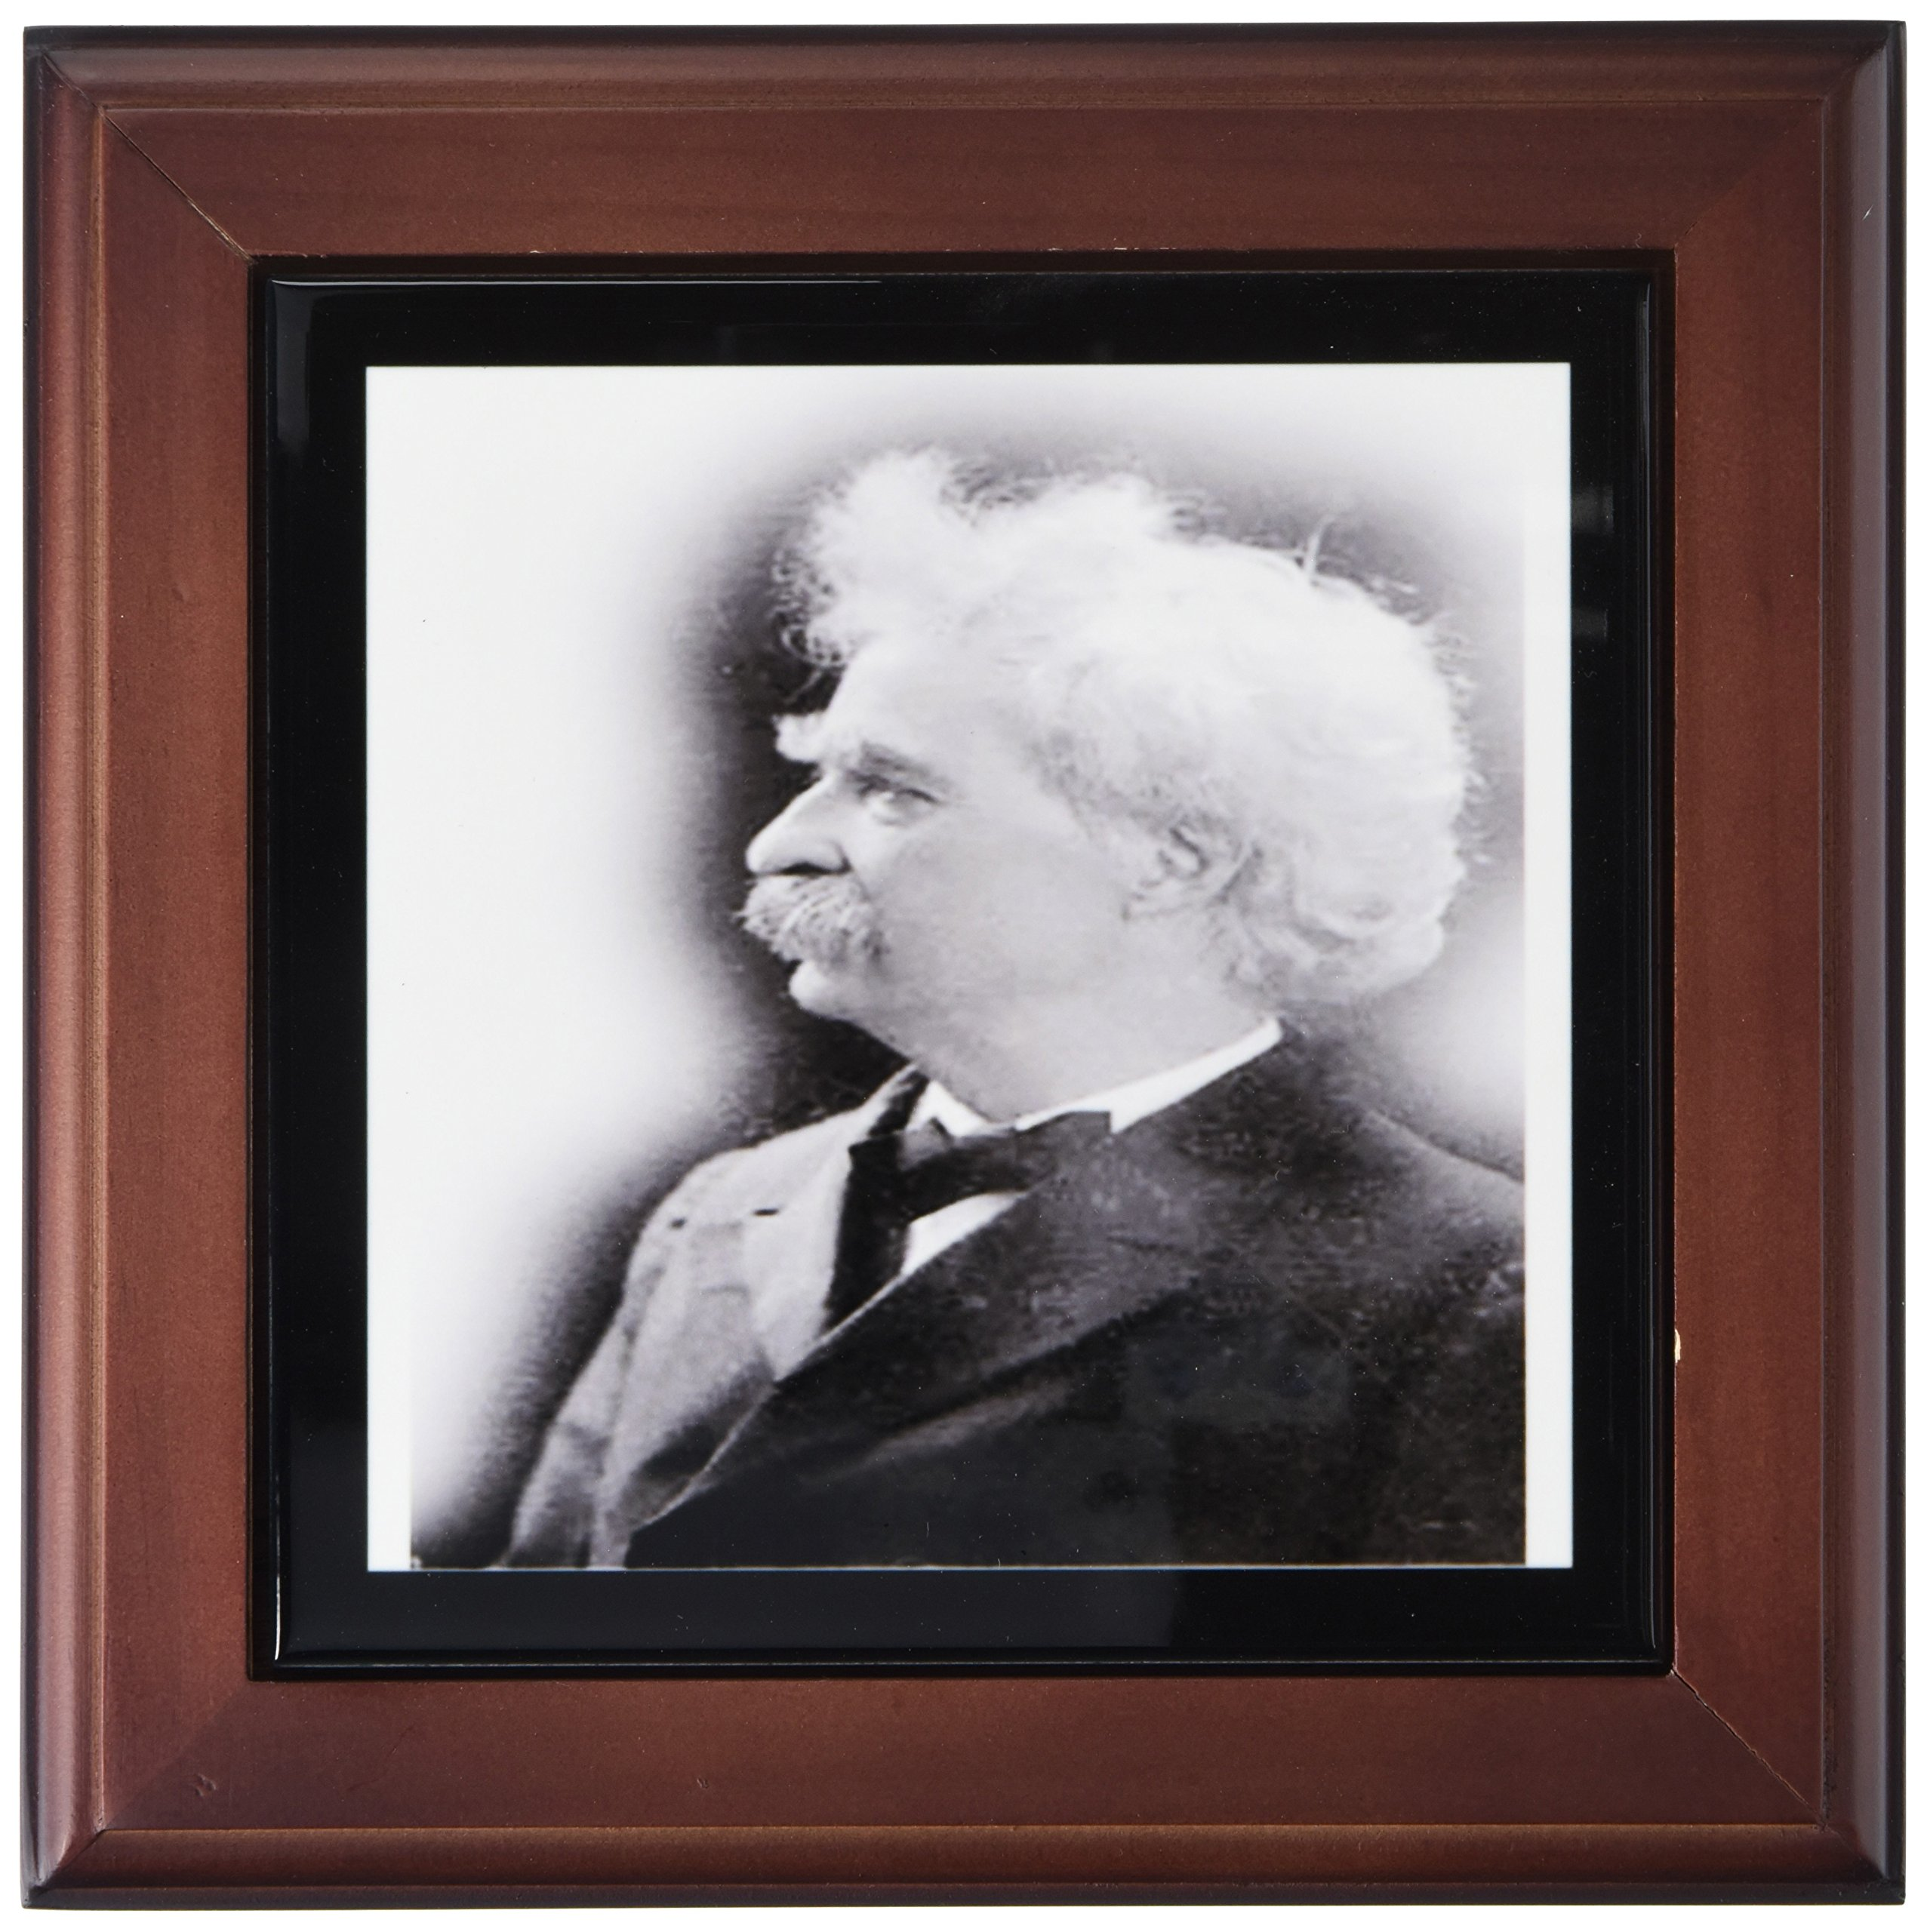 3dRose ft_98647_1 Vintage Photo of Mark Twain.Jpg-Framed Tile, 8 by 8-Inch